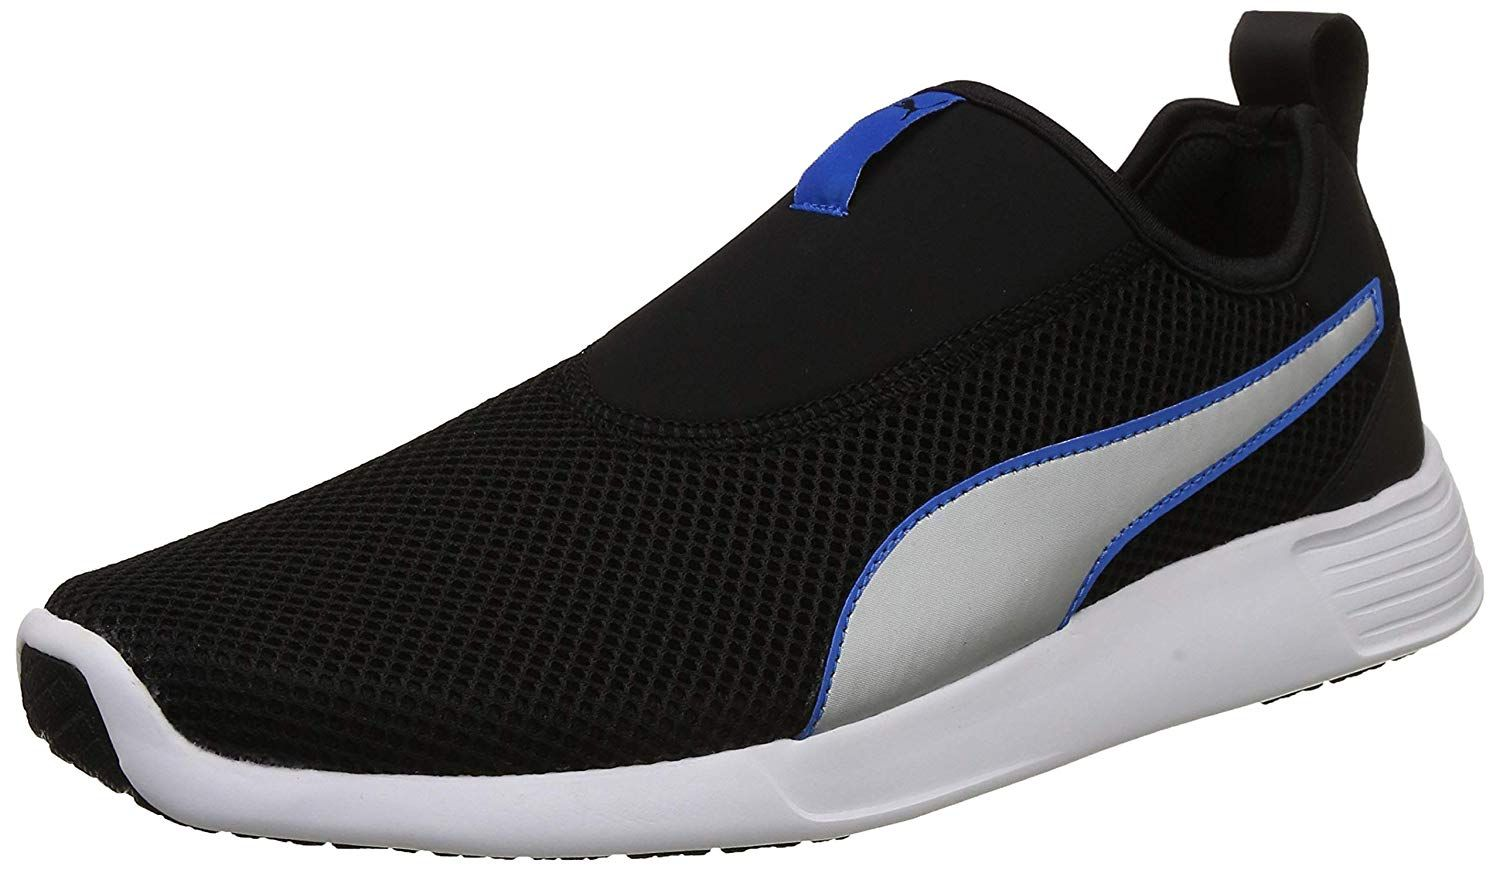 cb3a5b27442b0 Puma Men's Sneakers: Buy Online at Low Prices in India - Amazon.in ...